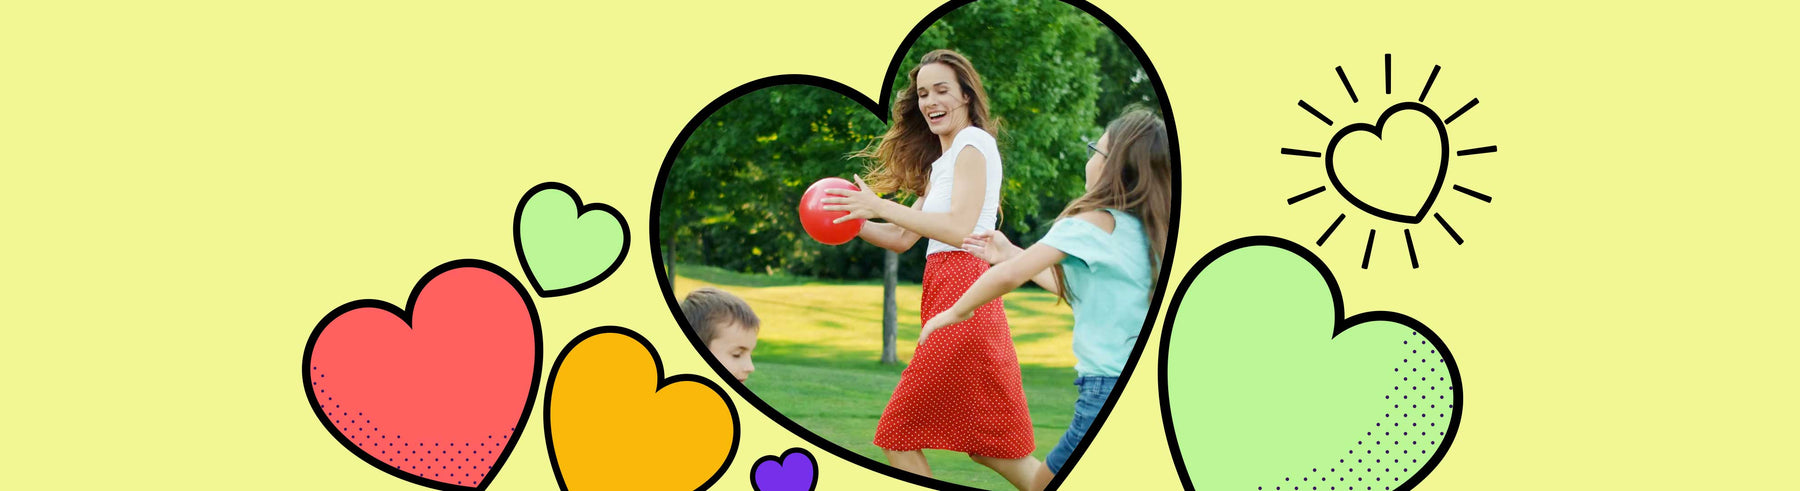 Enjoy the outdoors with a great range of Family Games at KidsPlaysets.com.au